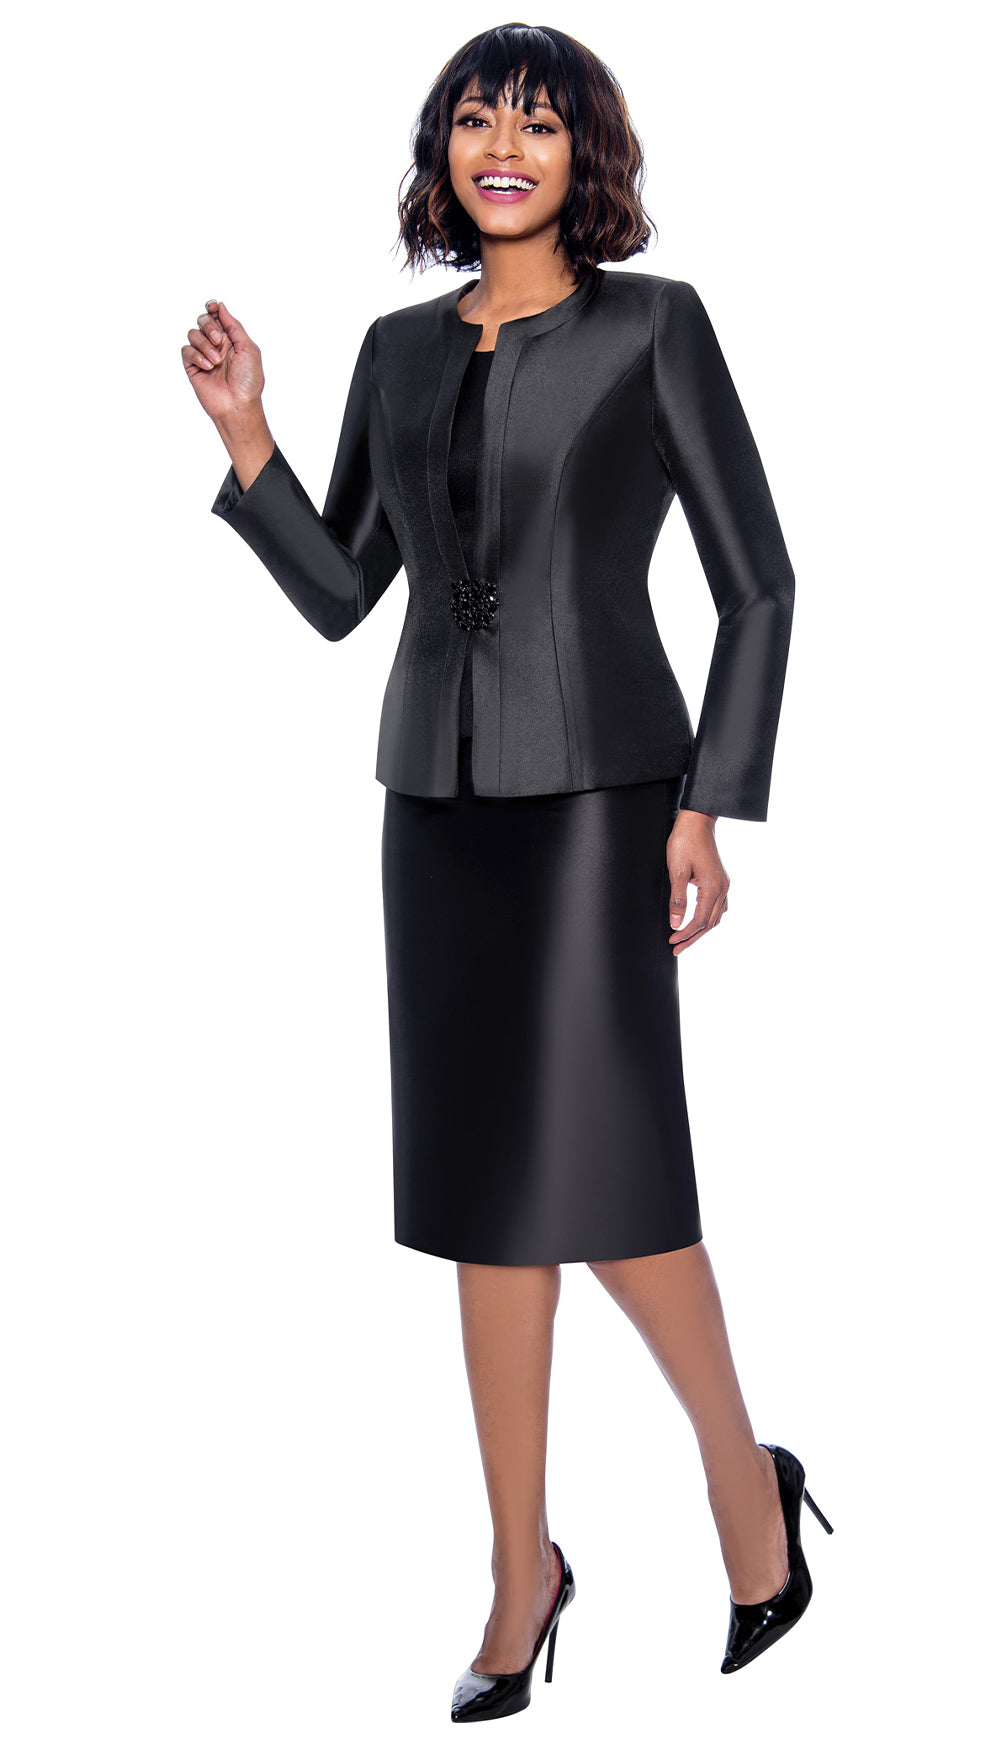 Terramina Suit 7854-Black - Church Suits For Less